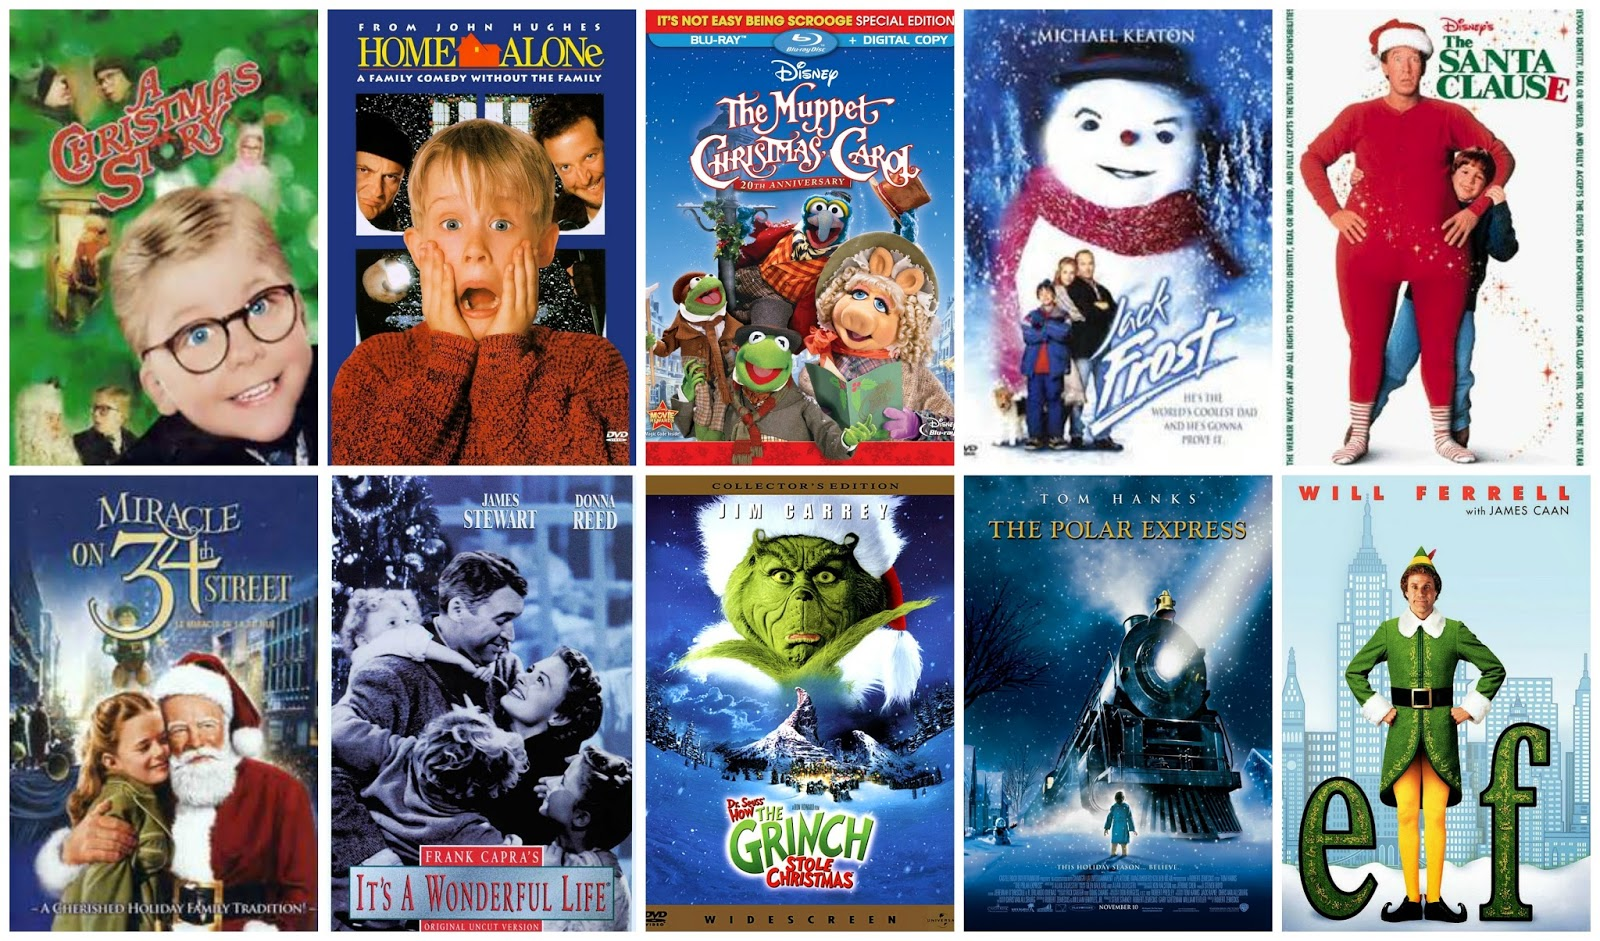 my top 10 favorite christmas movies and specials - Top 10 Best Christmas Movies